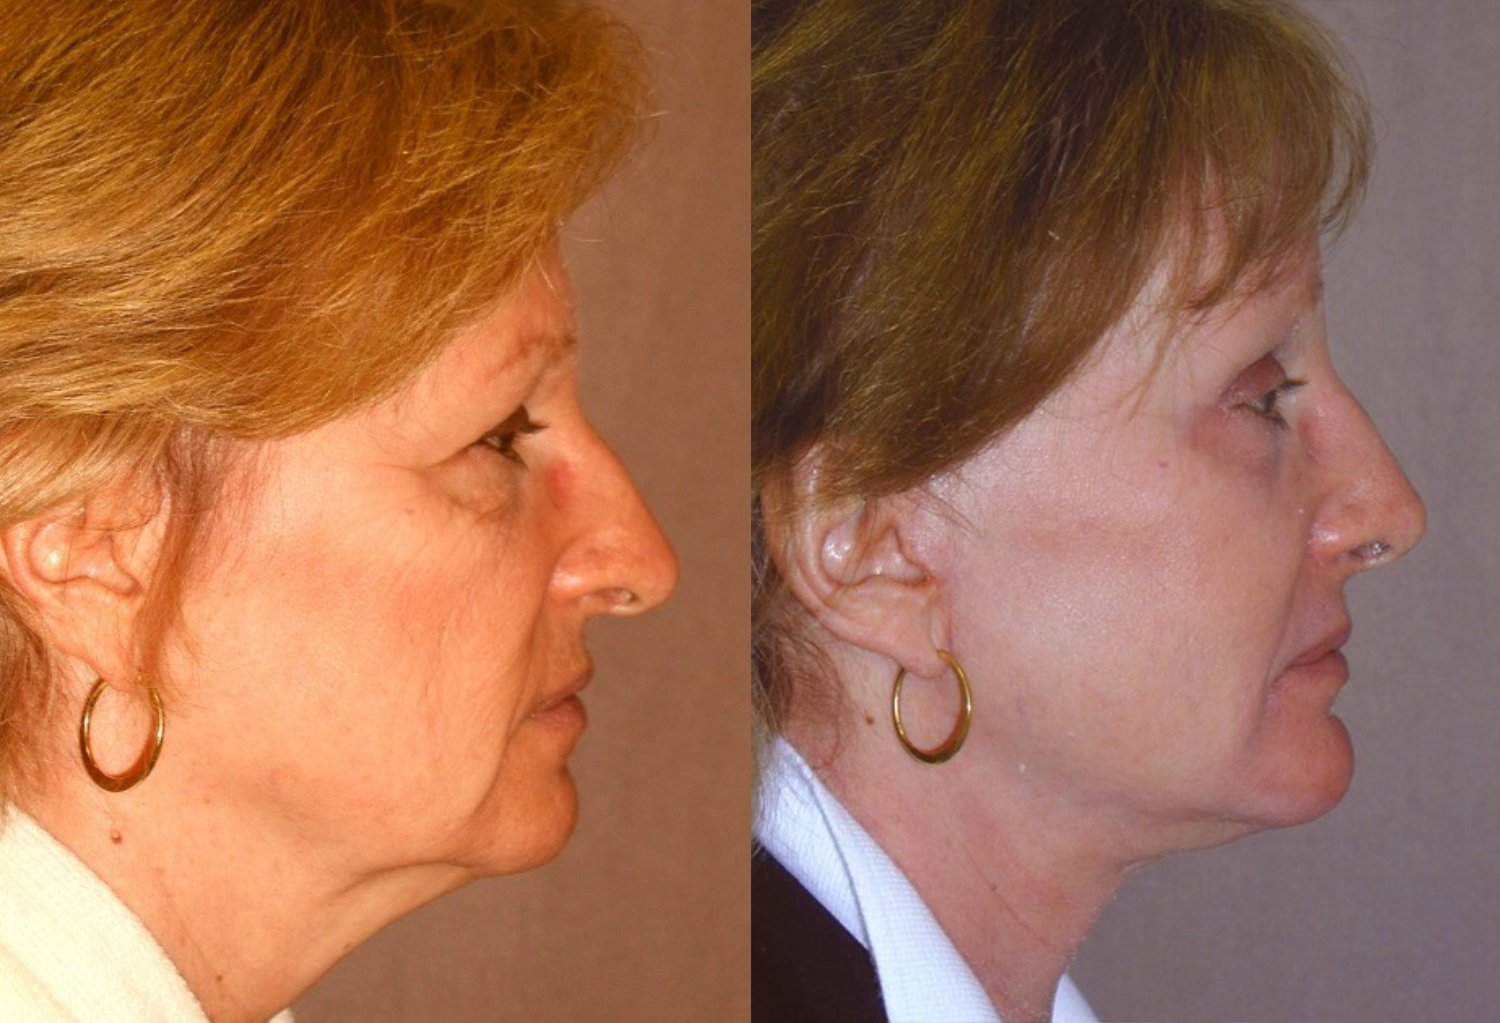 62-year-old facelift, browlift, hairline approach, upper & lower eyelids, chin implant, rhinoplasty subtle without fracture nasal domes, peel lower eyelids & perioral, 4 months, side